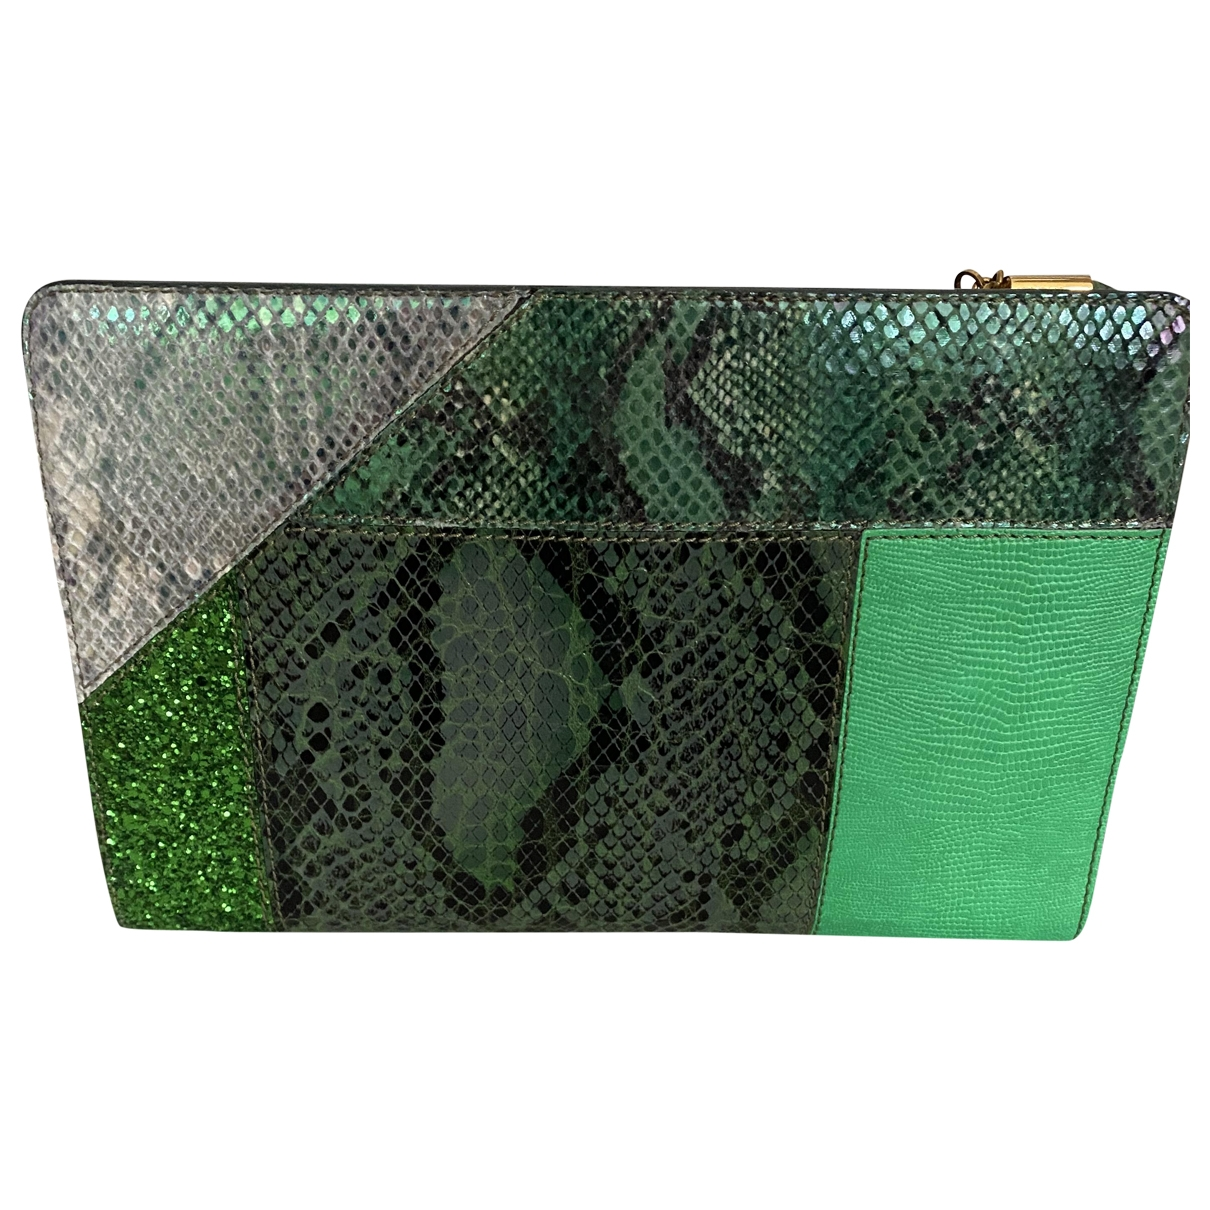 Stella Mccartney \N Green Cloth Clutch bag for Women \N